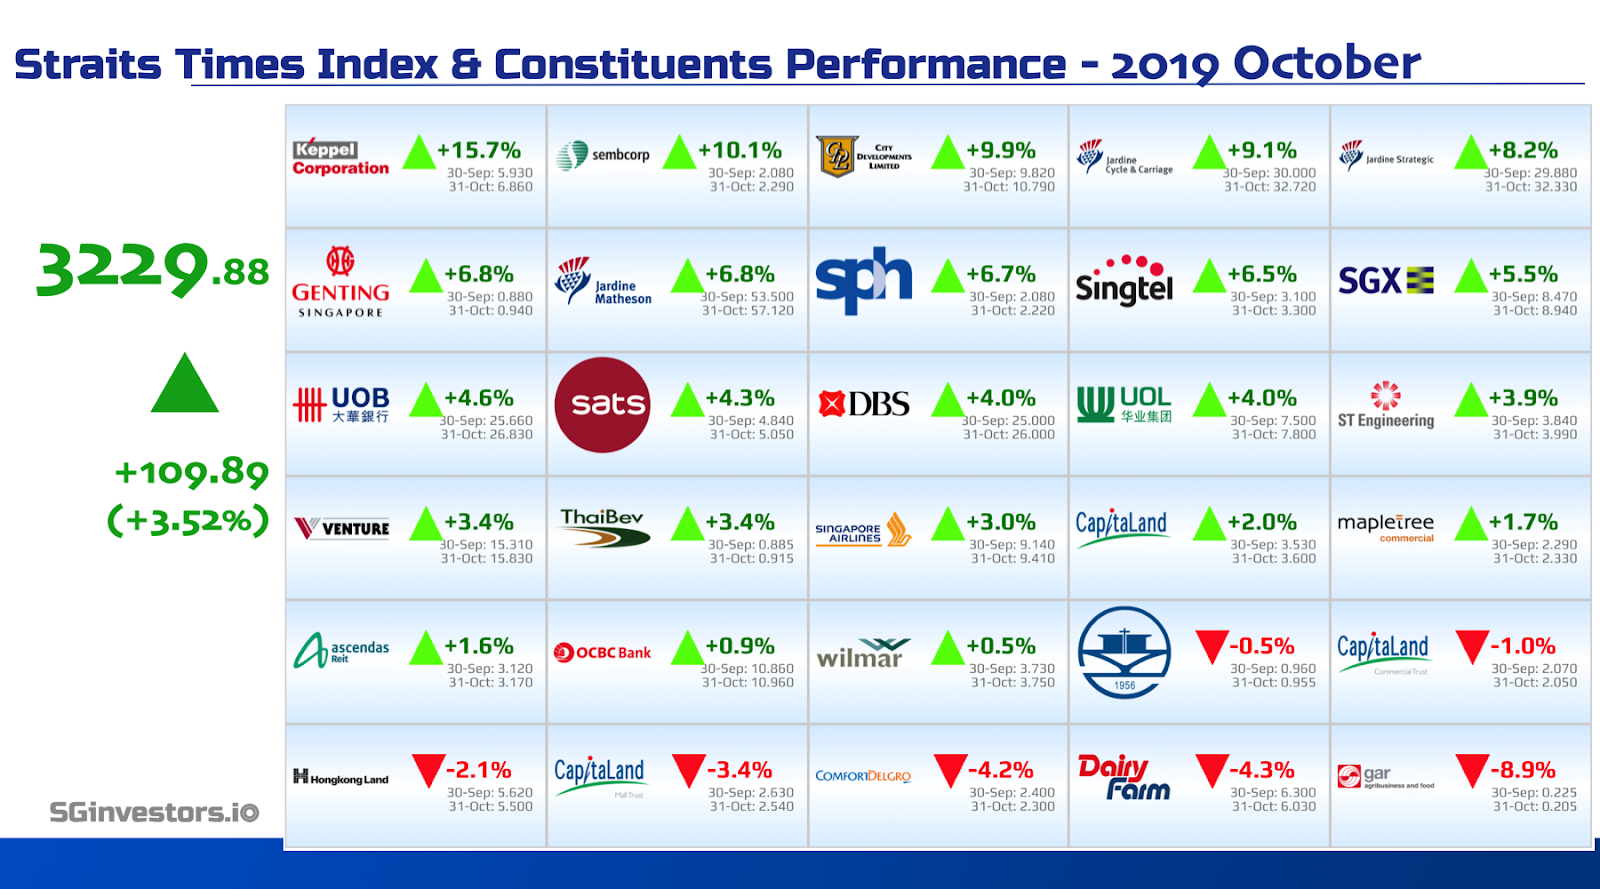 Performance of Straits Times Index (STI) Constituents in October 2019